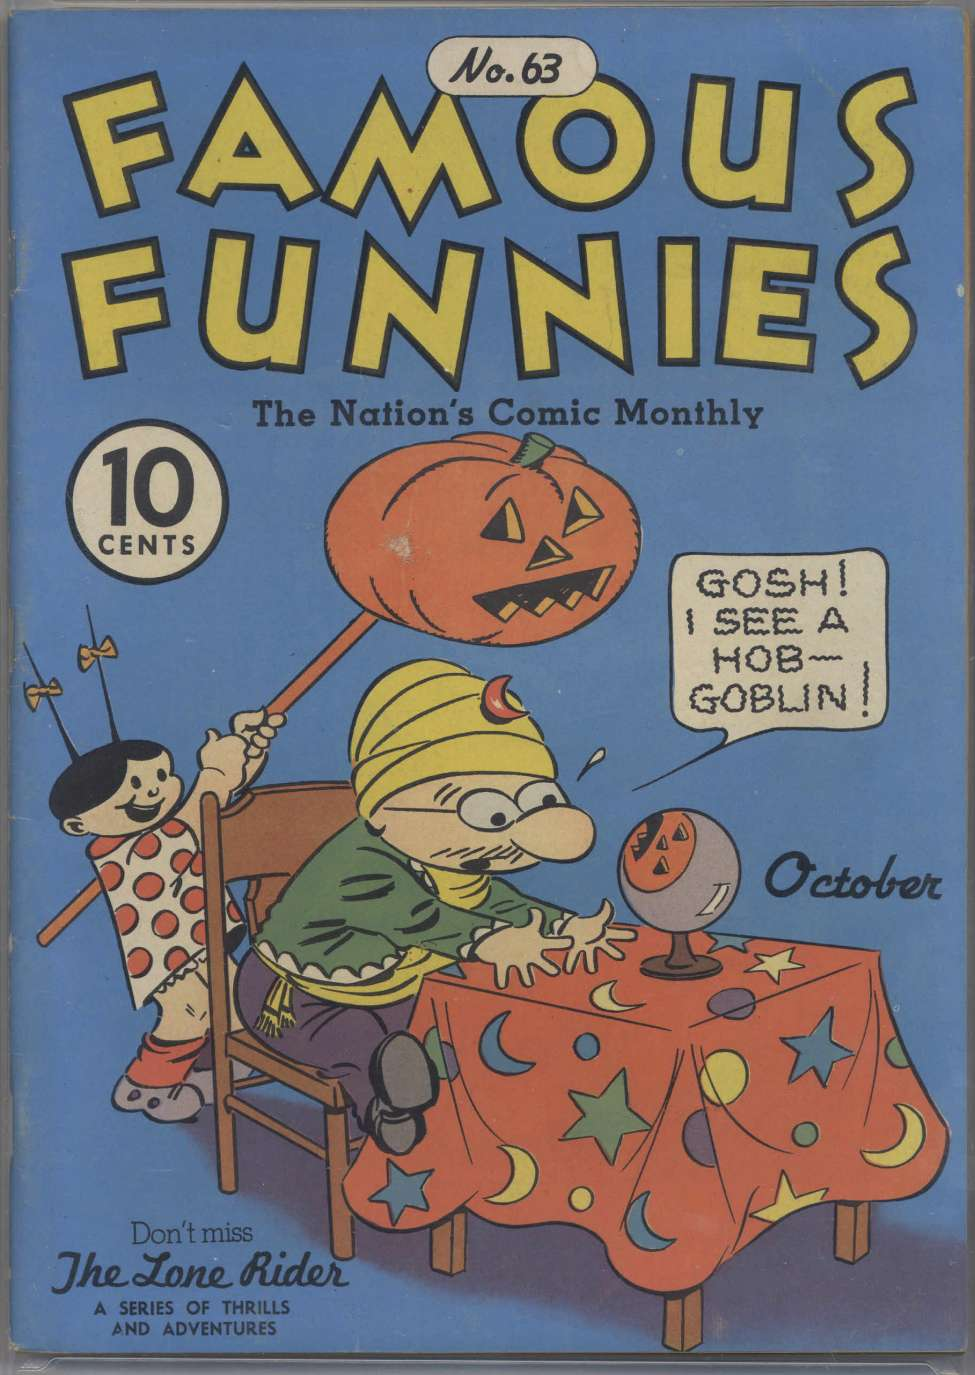 Comic Book Cover For Famous Funnies #63